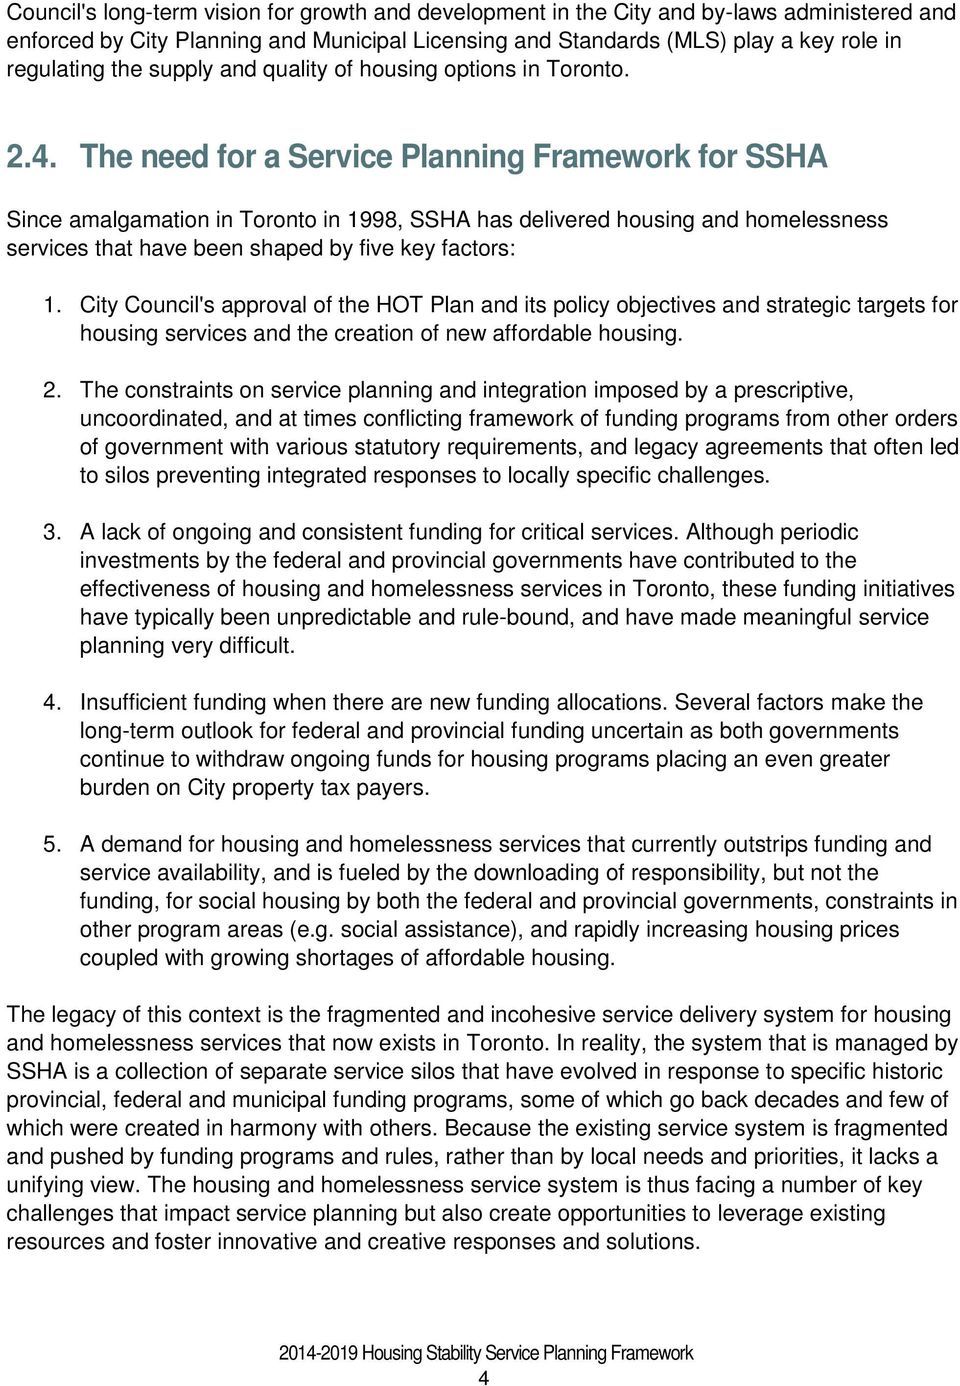 The need for a Service Planning Framework for SSHA Since amalgamation in Toronto in 1998, SSHA has delivered housing and homelessness services that have been shaped by five key factors: 1.